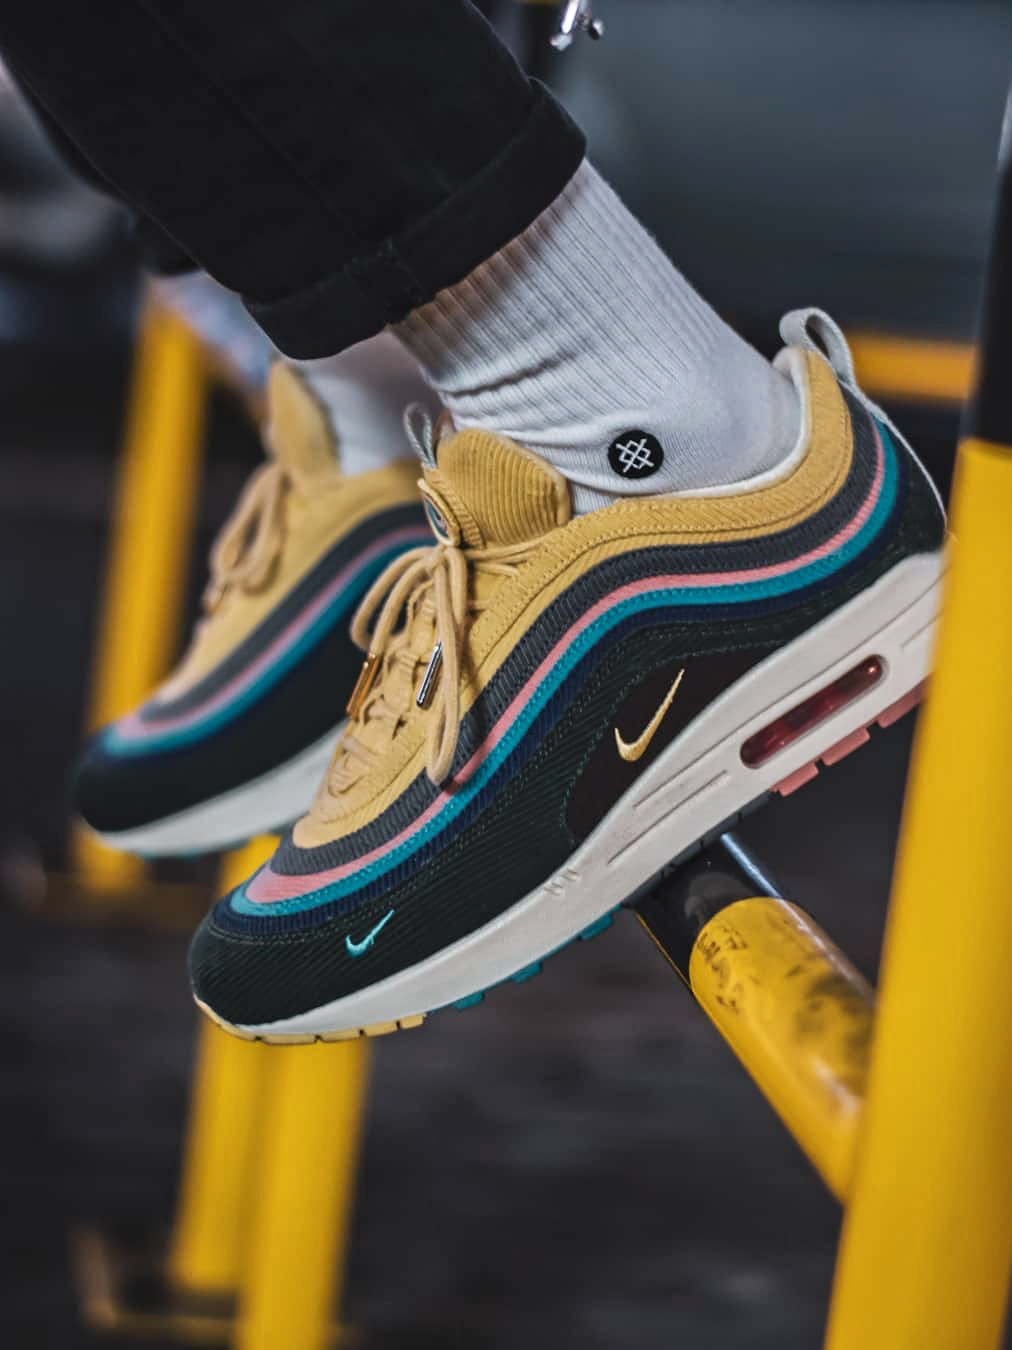 half off 3a79e cd872 Sean Wotherspoon x Nike Air Max 1/97 - 2018 (by ...